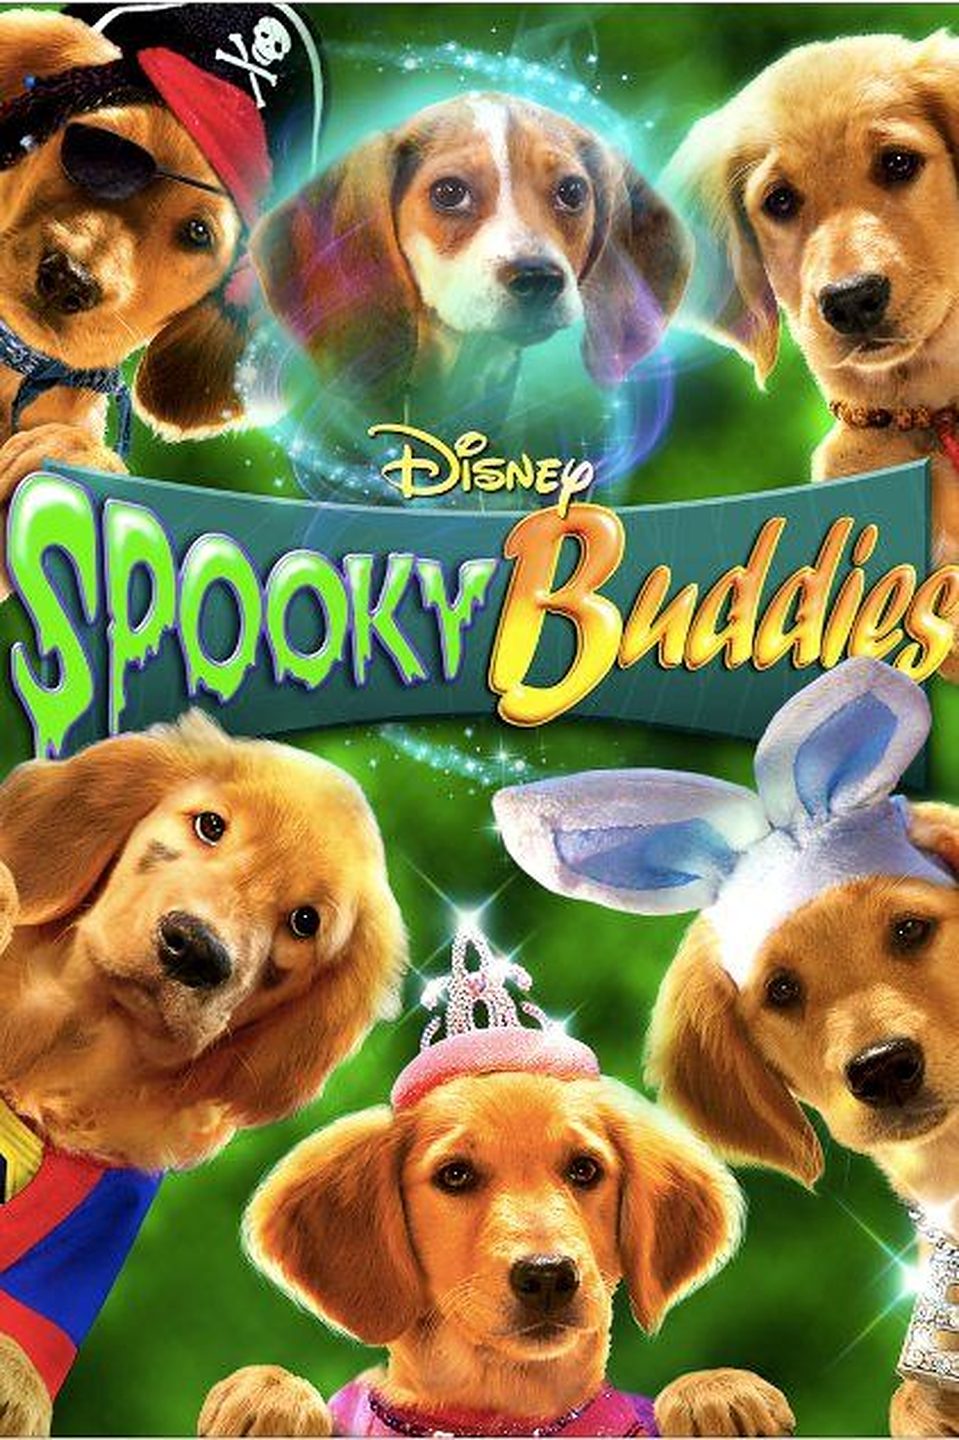 """<p>Who can say no to puppies saving the world while also wearing adorable <a href=""""https://www.goodhousekeeping.com/holidays/halloween-ideas/g4564/scary-halloween-costumes/"""" rel=""""nofollow noopener"""" target=""""_blank"""" data-ylk=""""slk:Halloween costumes"""" class=""""link rapid-noclick-resp"""">Halloween costumes</a>? The fifth installment of the <em>Air Buddies</em> franchise follows the Buddies on a quest to stop Warwick the Warlock from unleashing the no-good hound ghosts in their town.</p><p><a class=""""link rapid-noclick-resp"""" href=""""https://go.redirectingat.com?id=74968X1596630&url=https%3A%2F%2Fwww.disneyplus.com%2Fmovies%2Fspooky-buddies%2Fizr8dMz5EK6A&sref=https%3A%2F%2Fwww.goodhousekeeping.com%2Flife%2Fentertainment%2Fg33651563%2Fdisney-halloween-movies%2F"""" rel=""""nofollow noopener"""" target=""""_blank"""" data-ylk=""""slk:WATCH NOW"""">WATCH NOW</a></p>"""